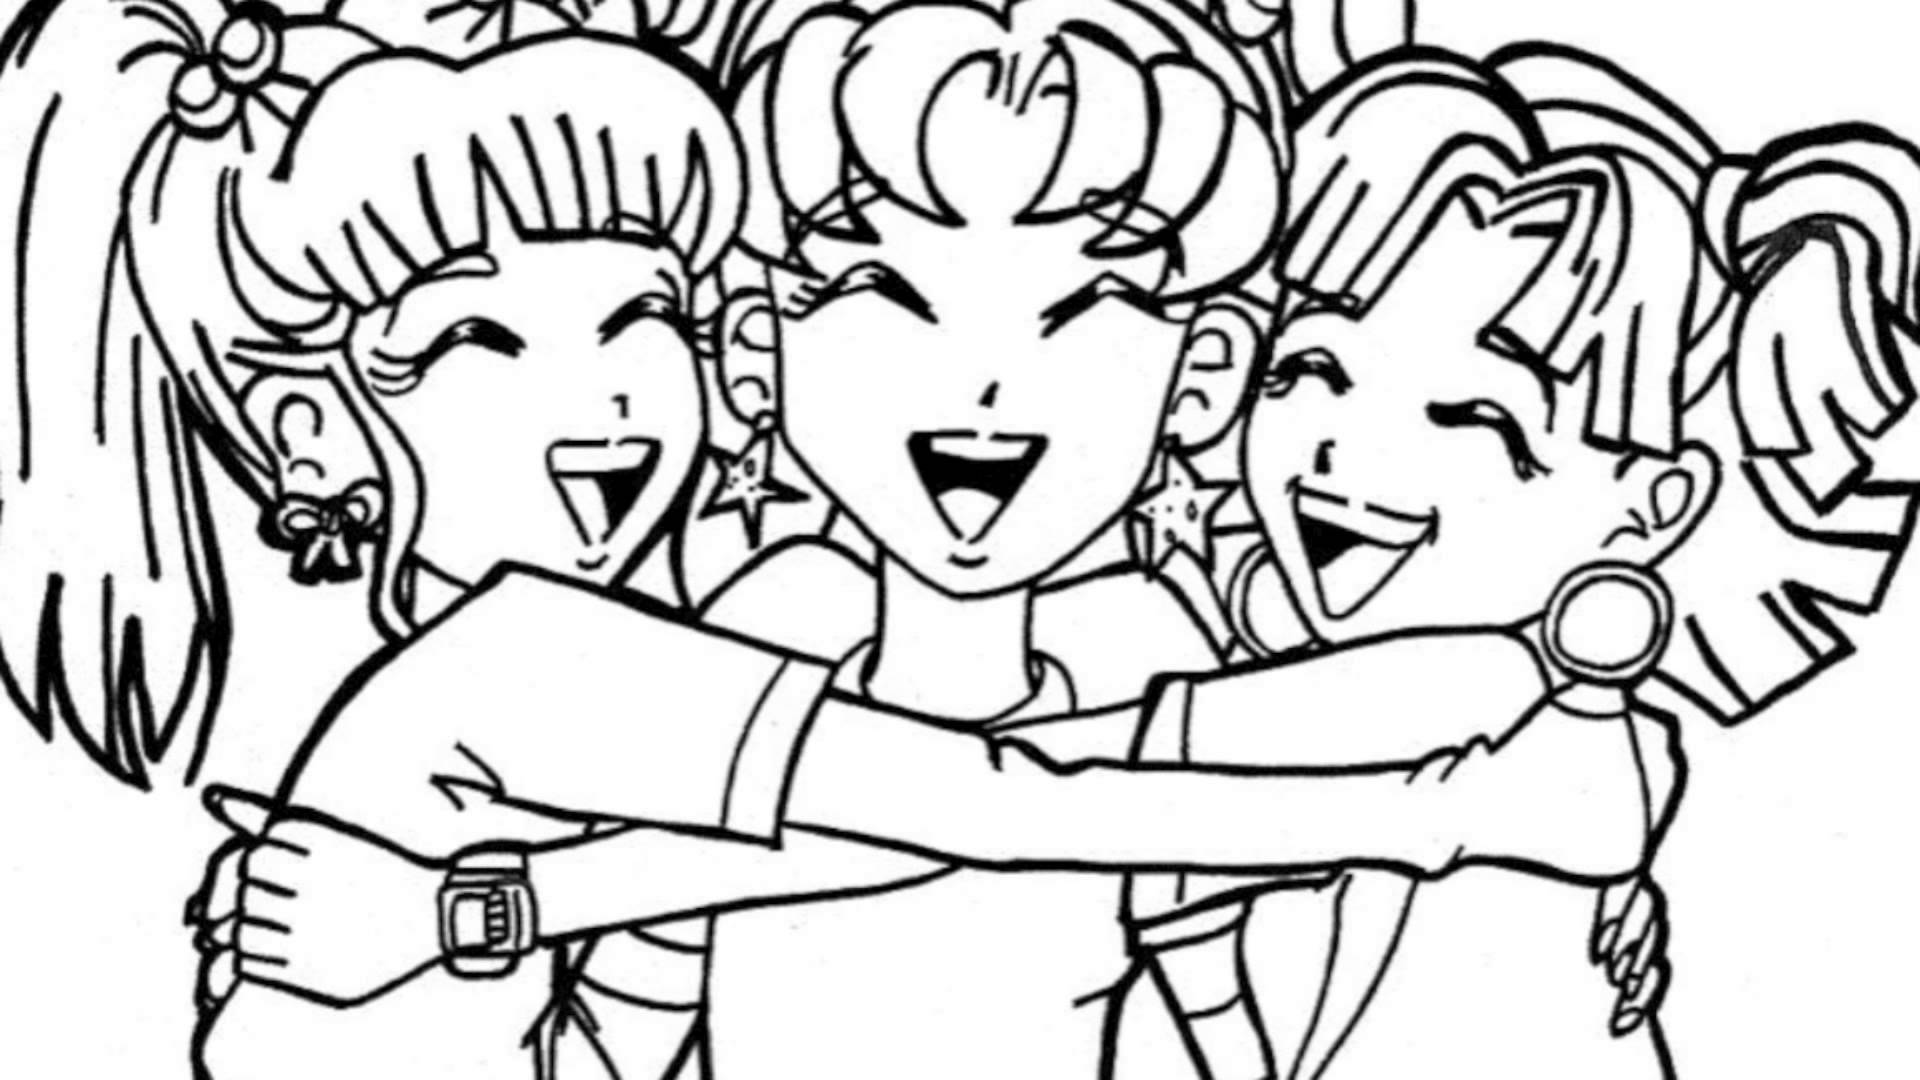 Dork Diaries Coloring Pages Online At Getdrawings Com Free For